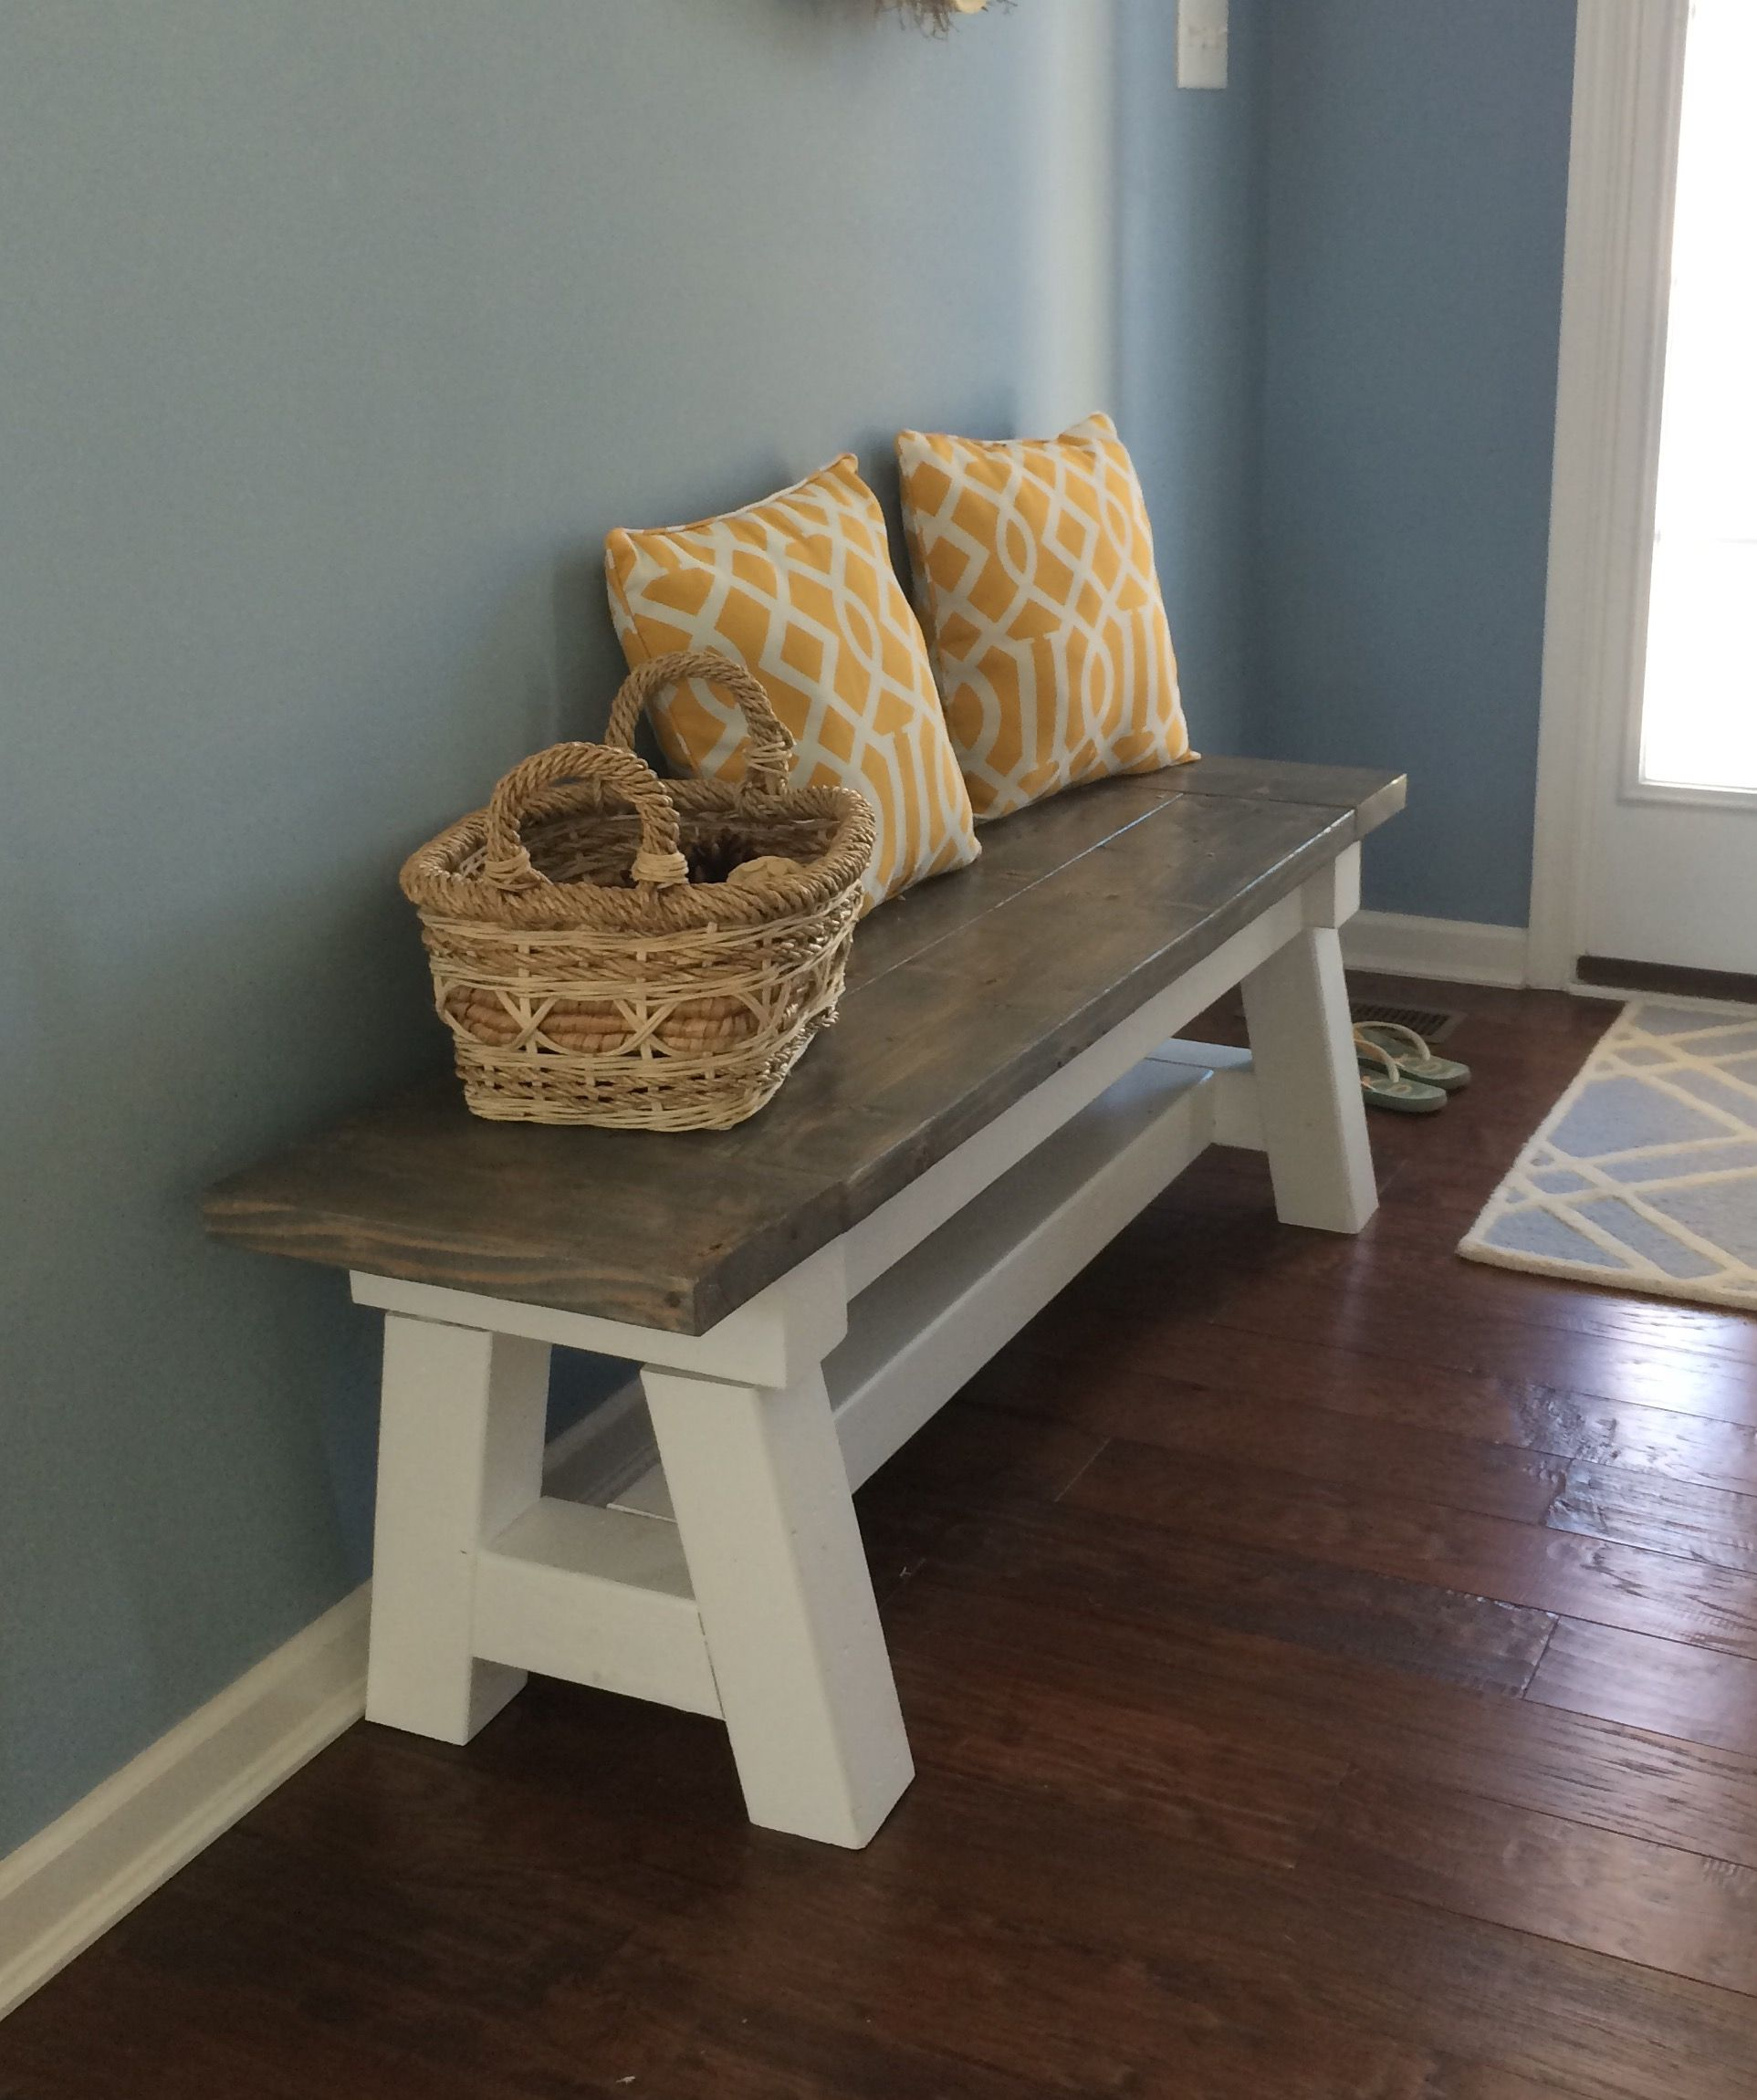 Beach Bench Do It Yourself Home Projects From Ana White In